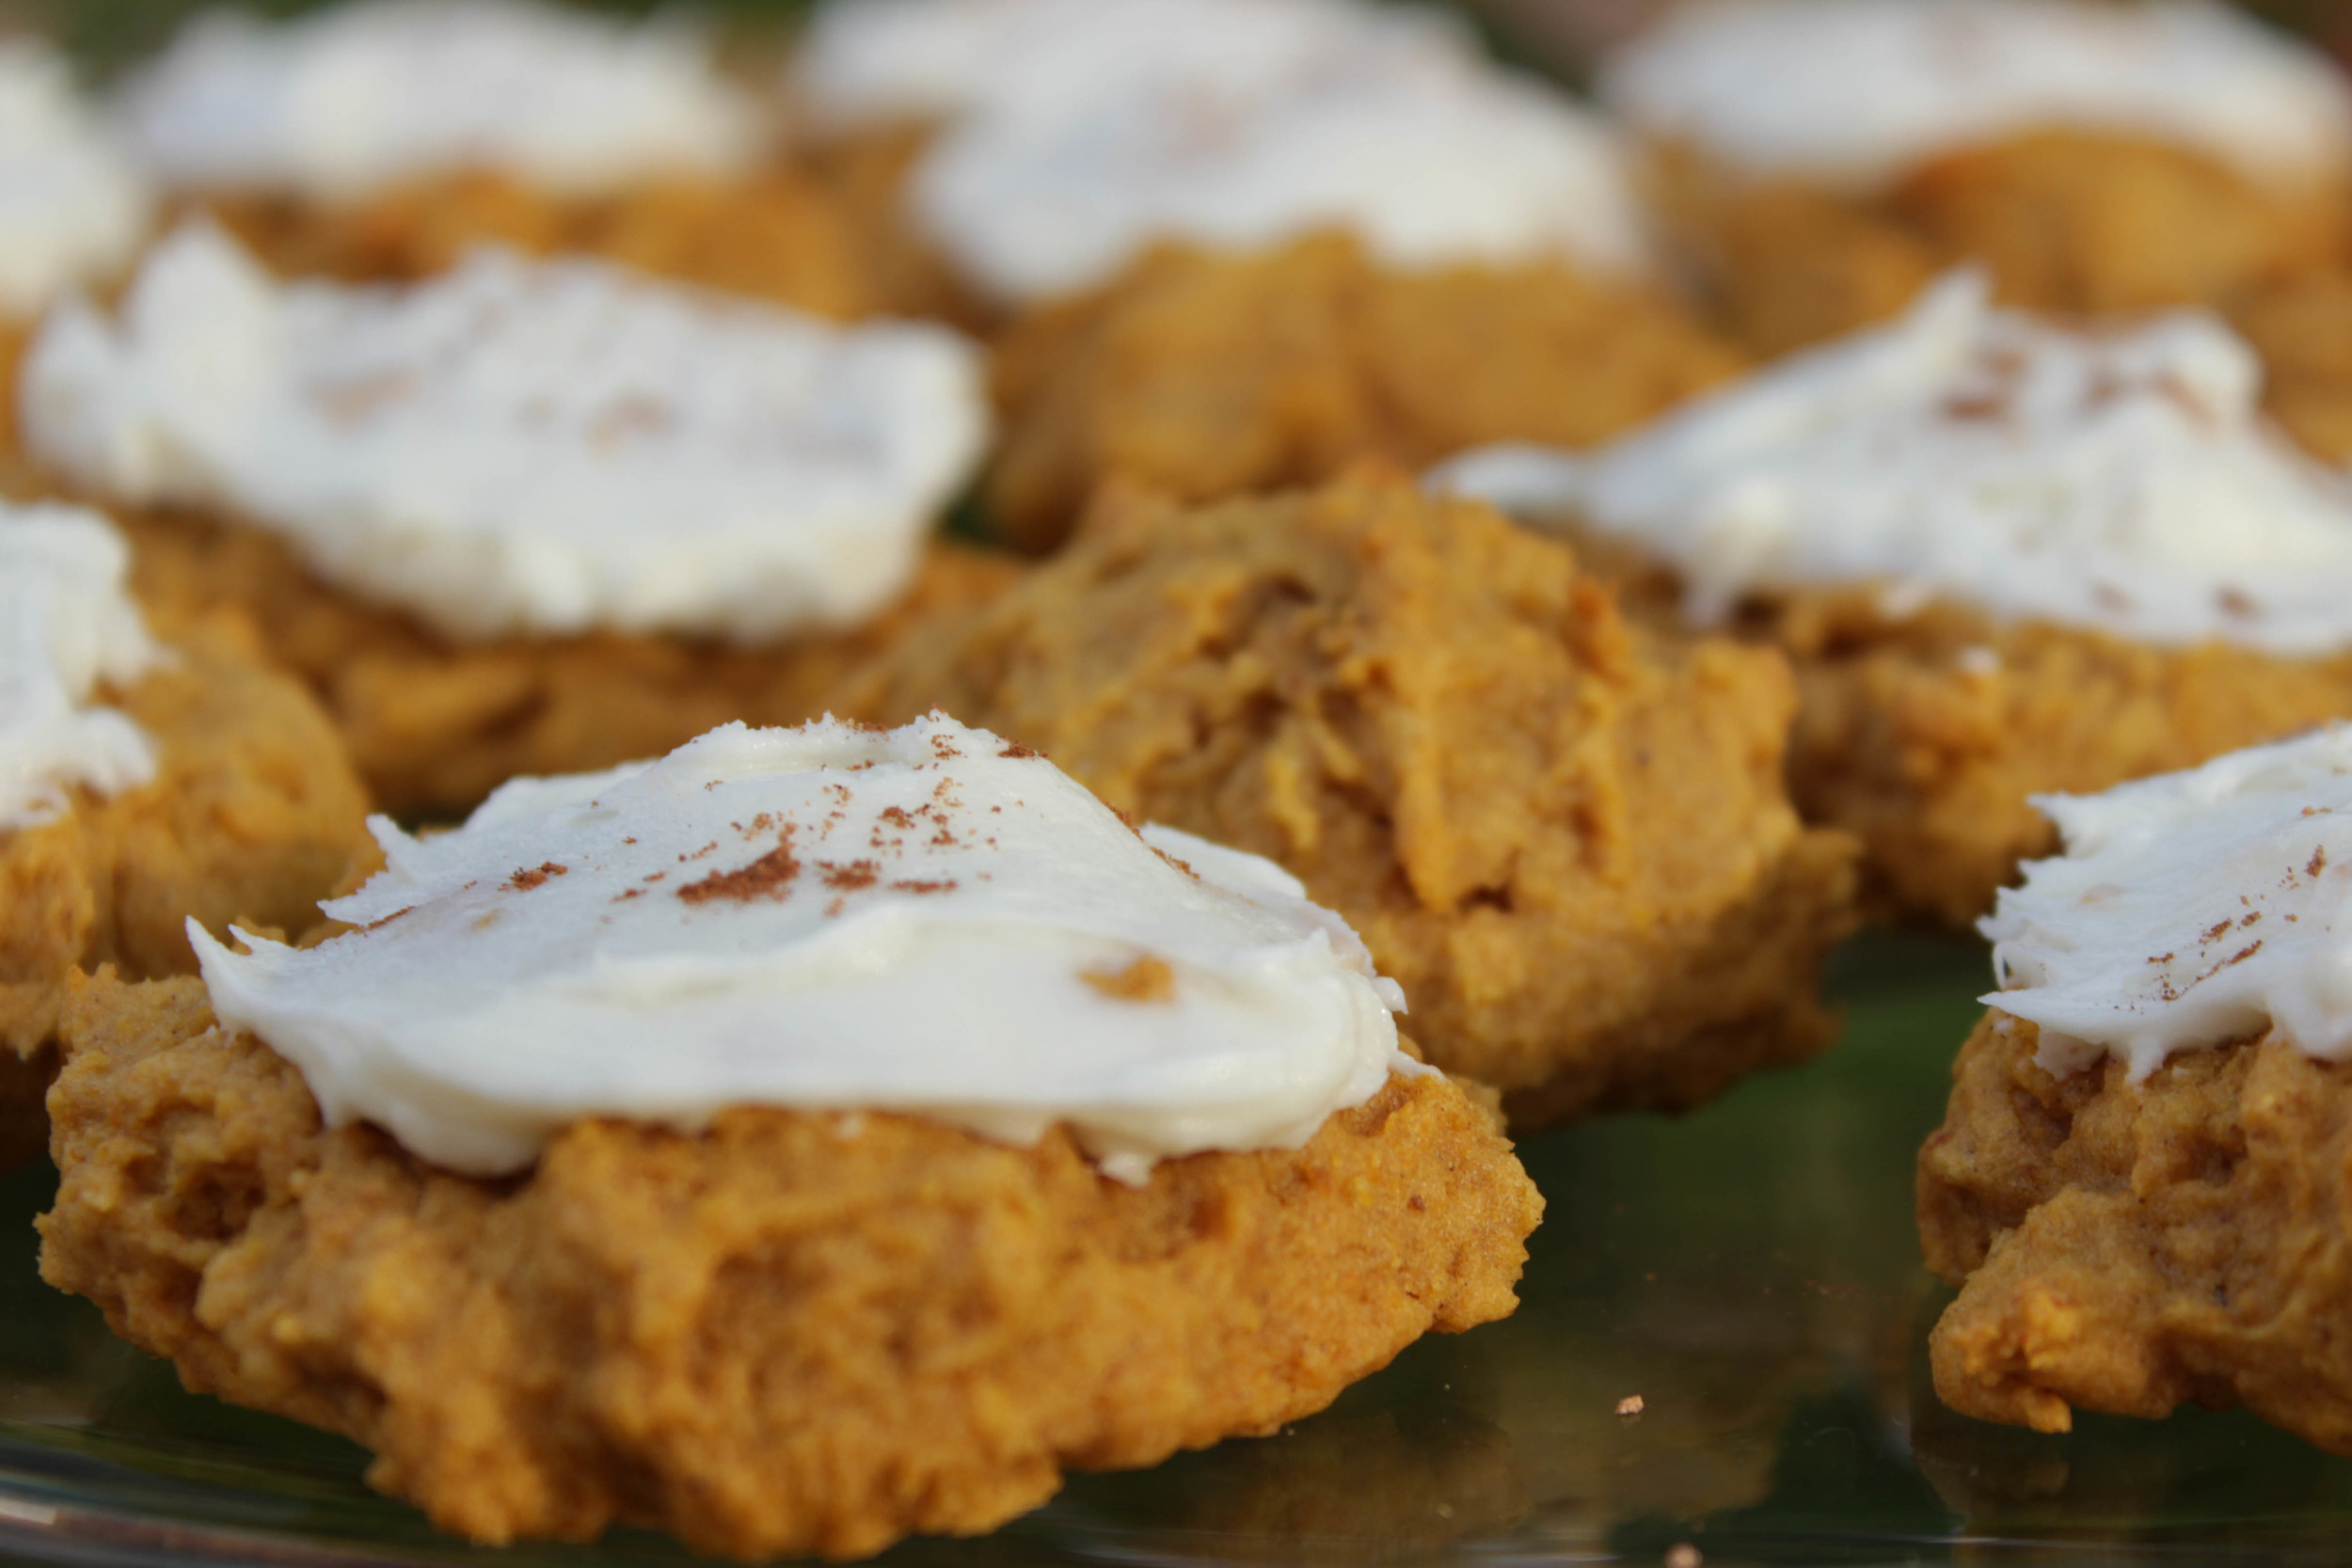 Now, spread a little frosting on each cooled cookie with a spatula. Sprinkle a little cinnamon and/or nutmeg over the top if you like for a little extra flavor.